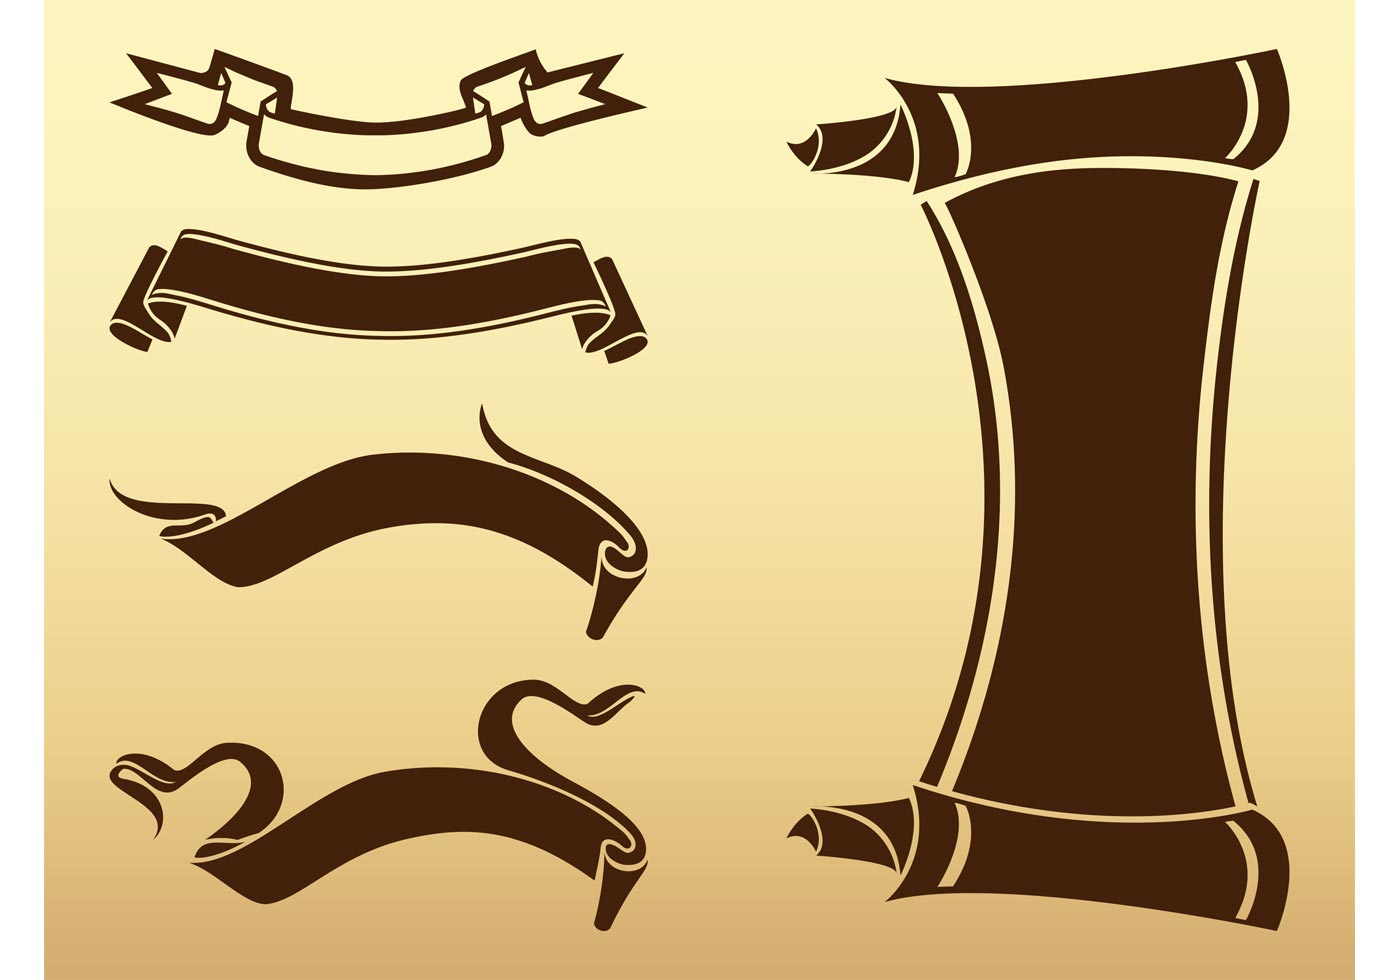 old ribbons and scrolls download free vector art stock